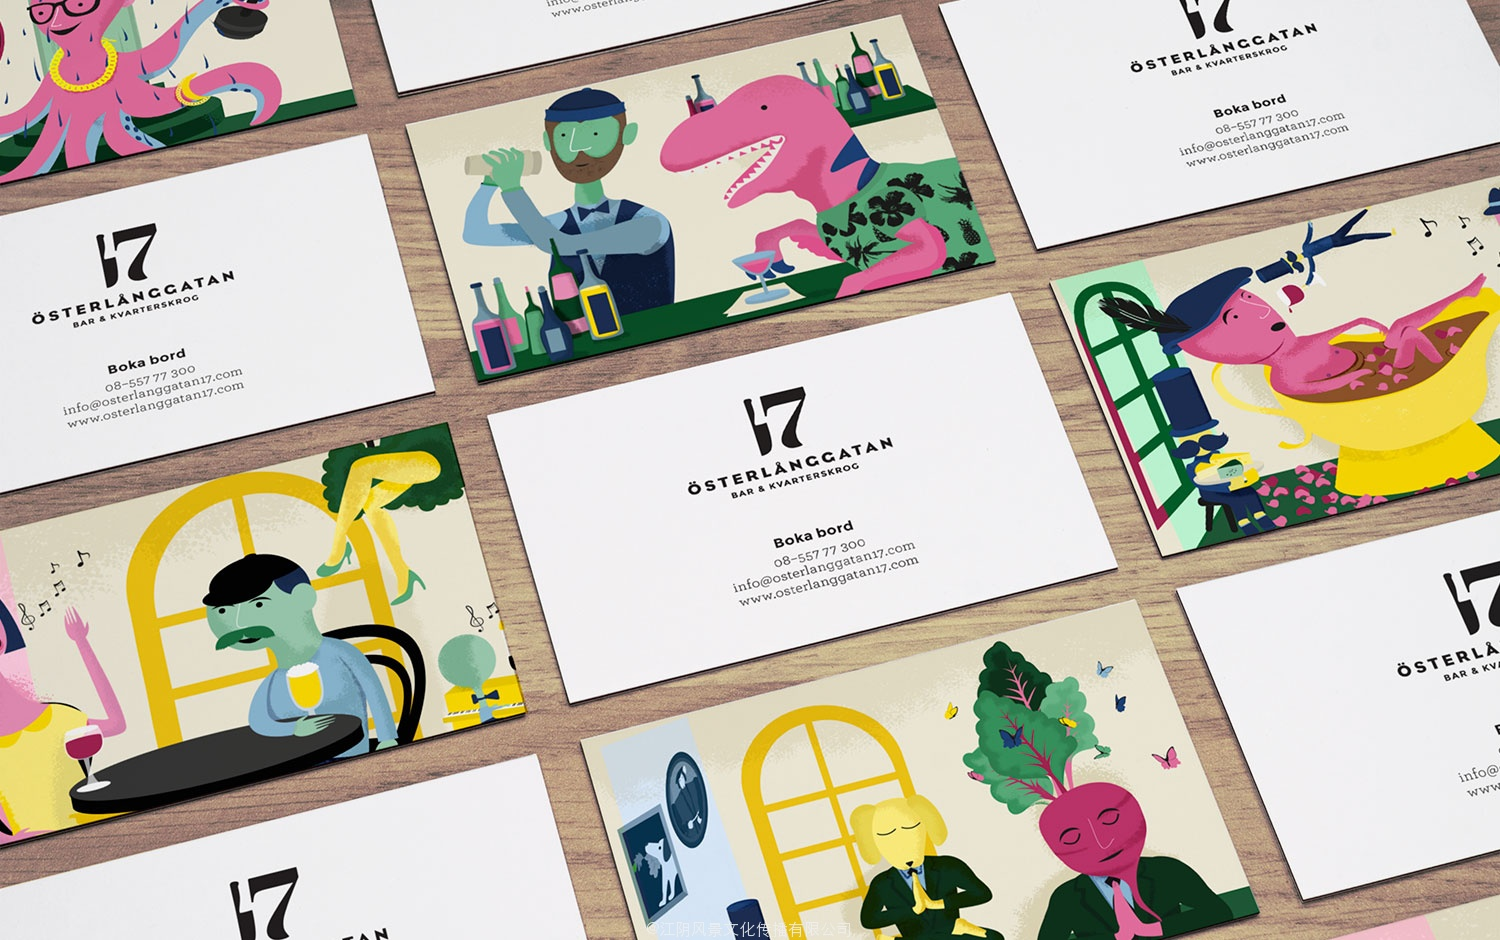 Brand identity and business cards for Stockholm restaurant Österlånggatan 17 by Lobby Design